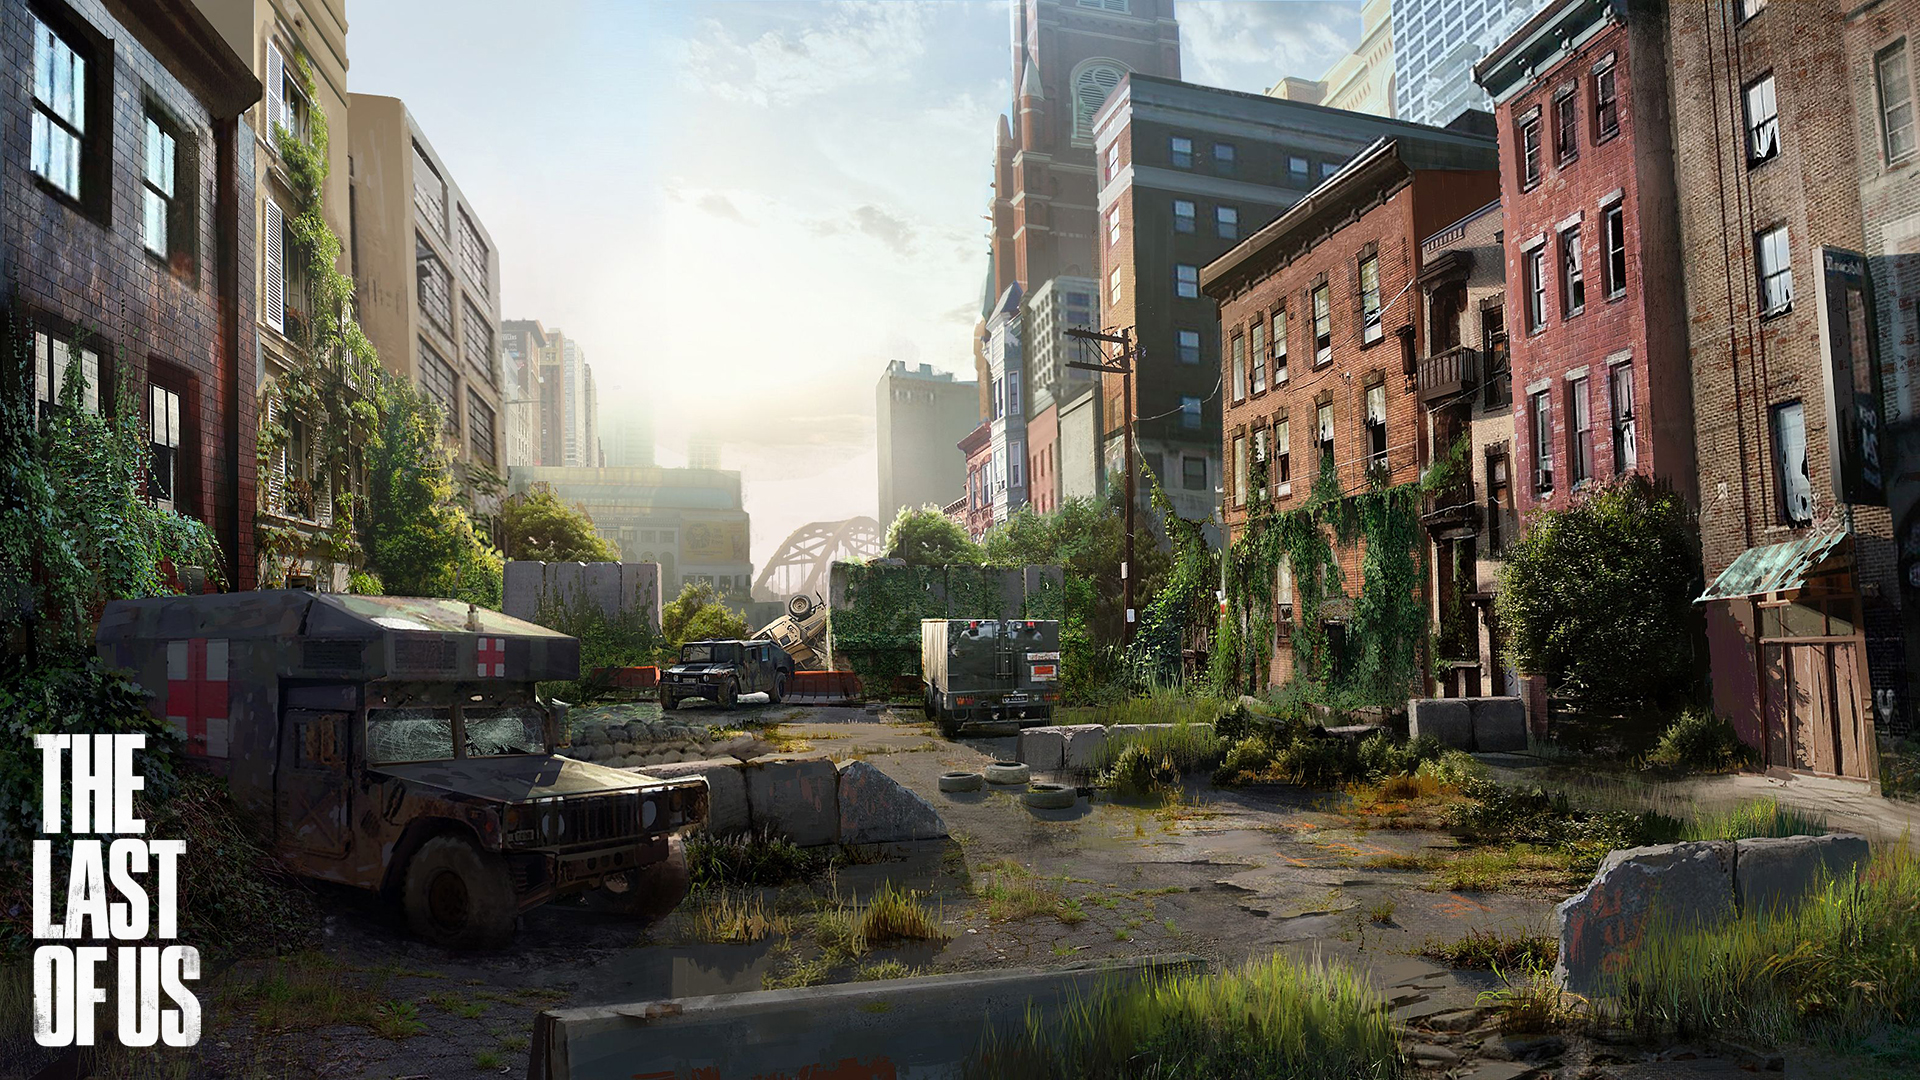 The Last of Us streets of Pittsburgh. Virtual background to use on Zoom, Microsoft Teams, Skype, Google Meet, WebEx or any other compatible app.